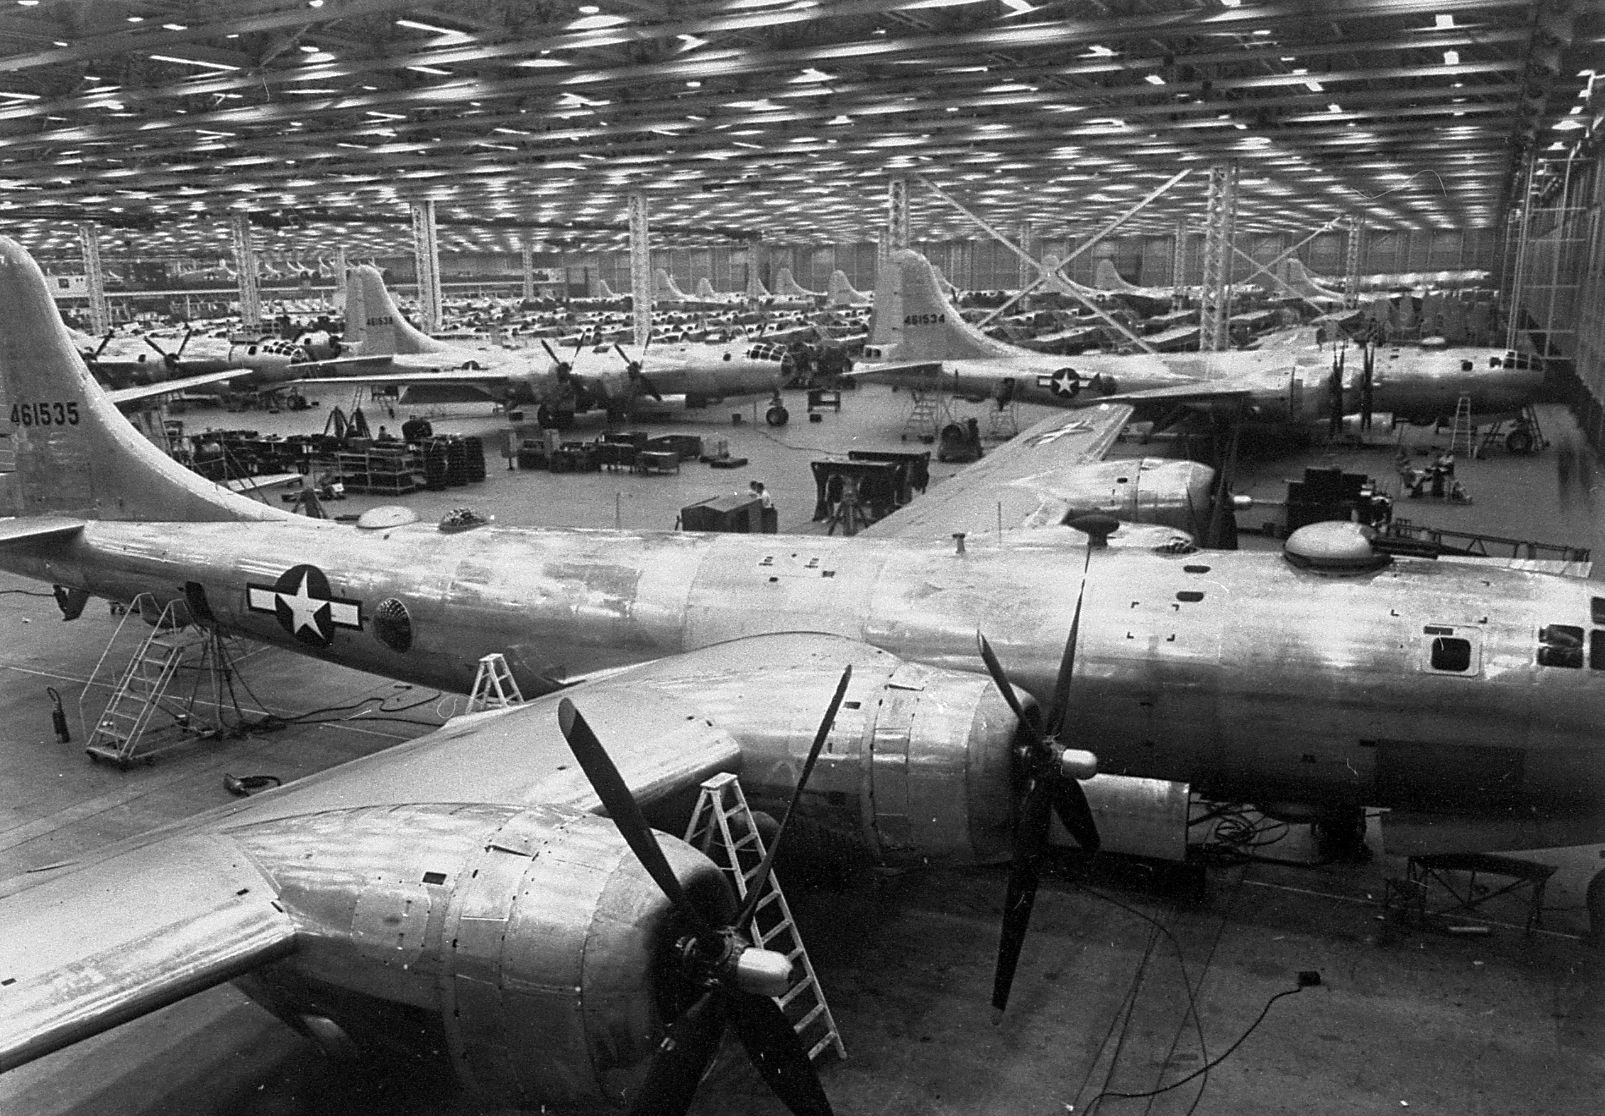 Boeing B-29 Superfortress bombers under construction ...